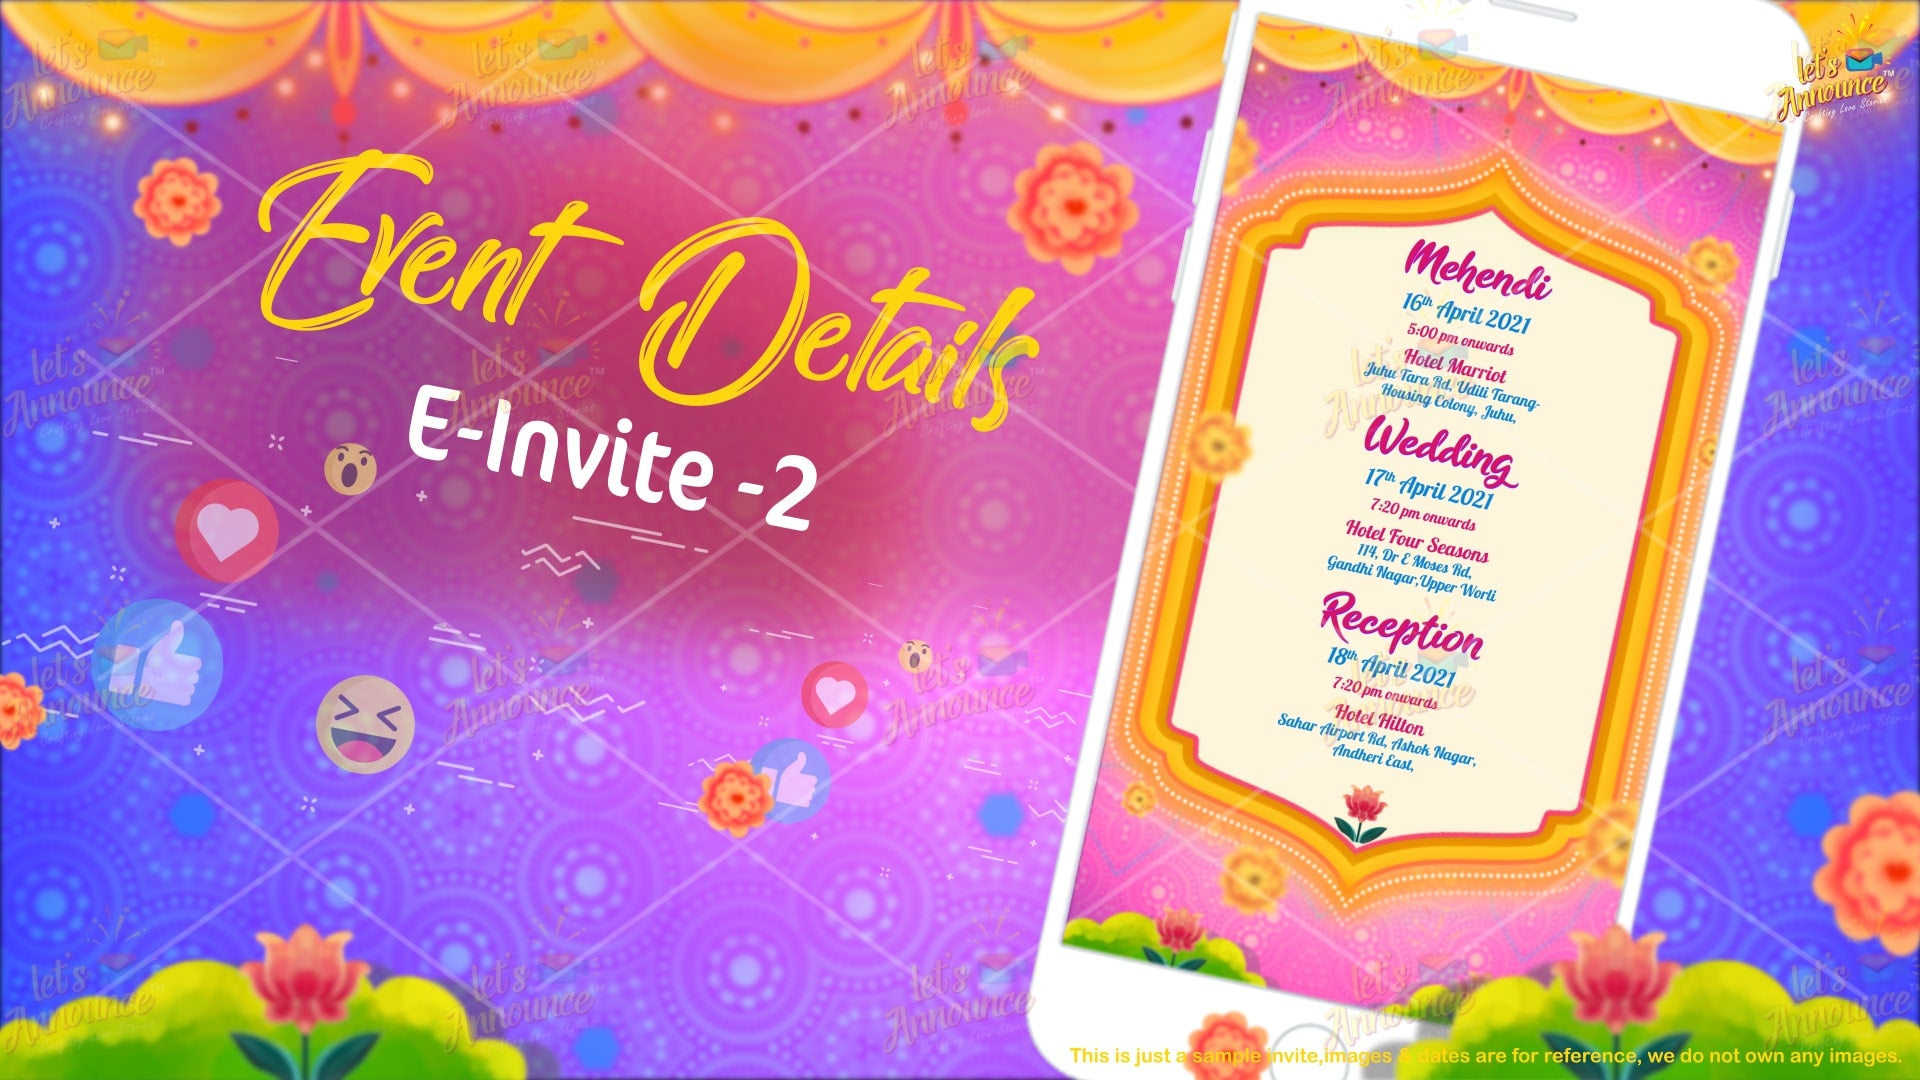 Quirky 2.0 Wedding EInvite (USD 50$)